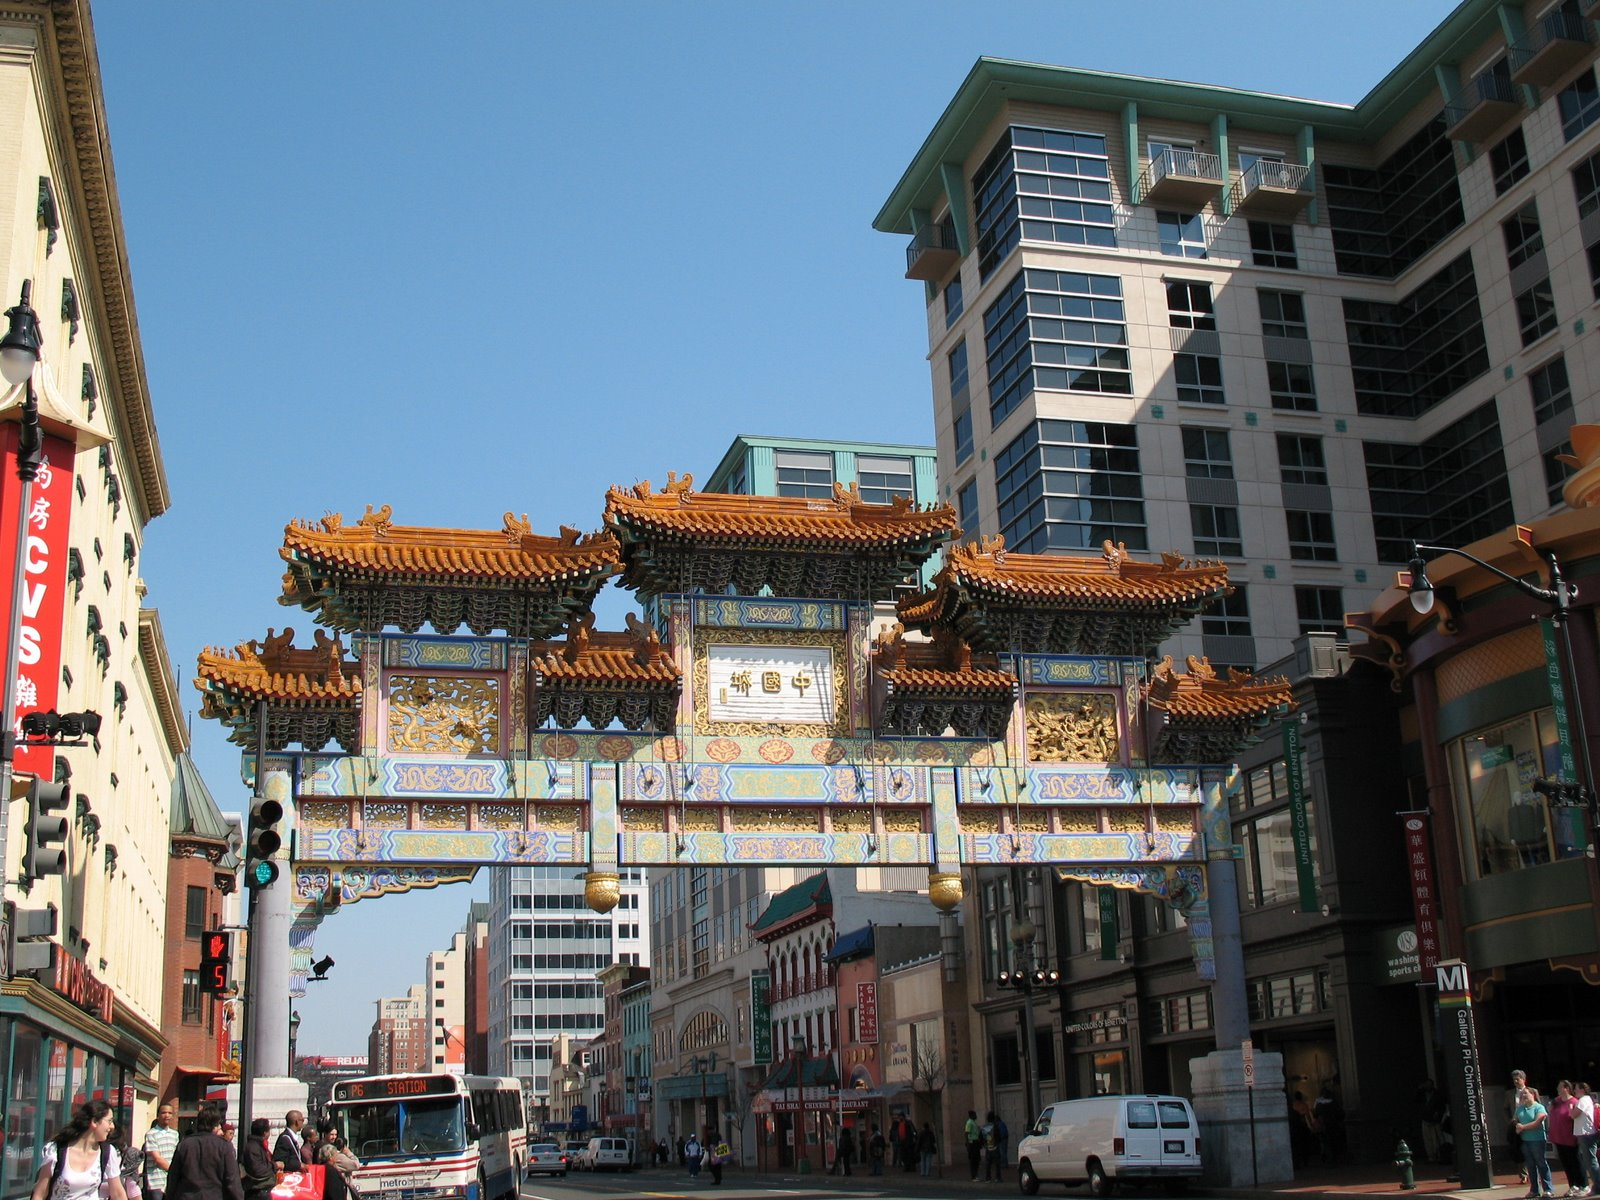 washington-dc-chinatown-image-city-nightlife-21001.jpg